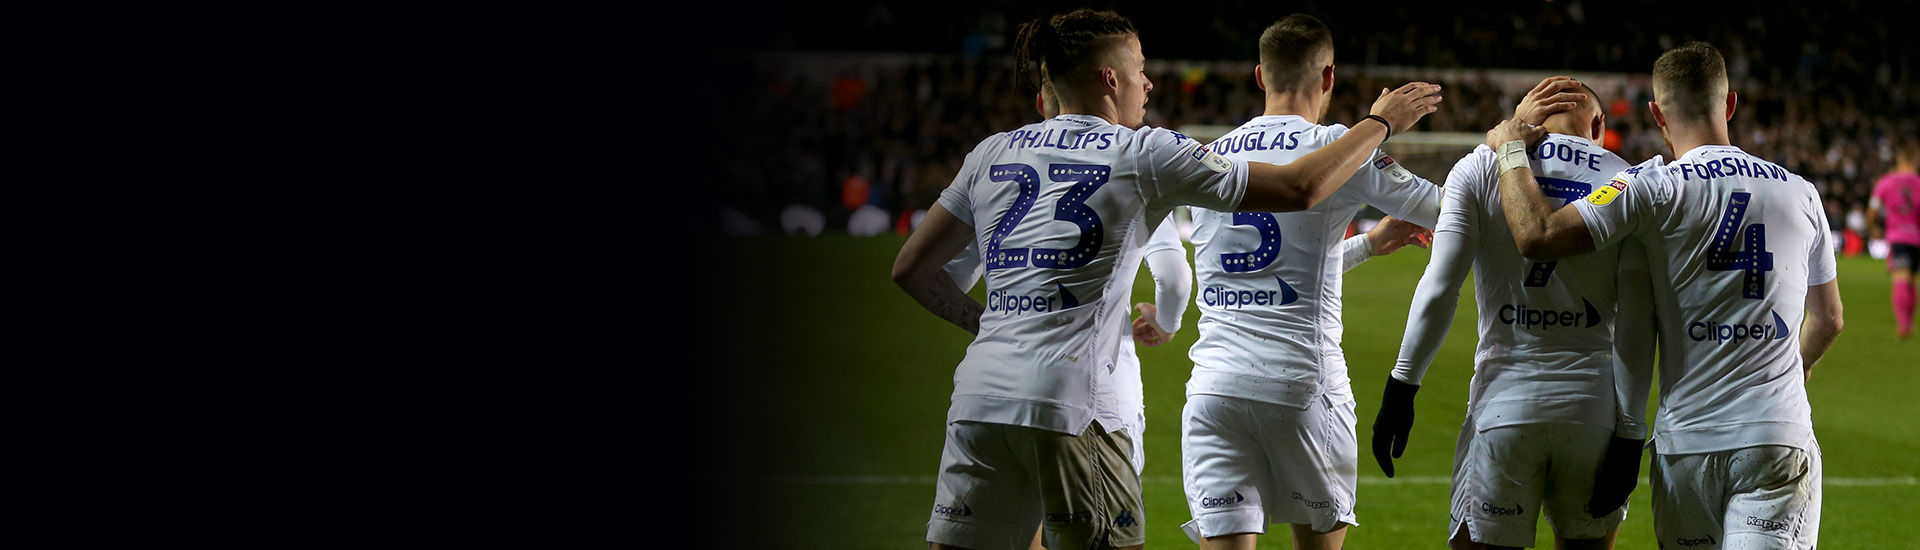 REPORT: LEEDS UNITED 2-1 QUEENS PARK RANGERS